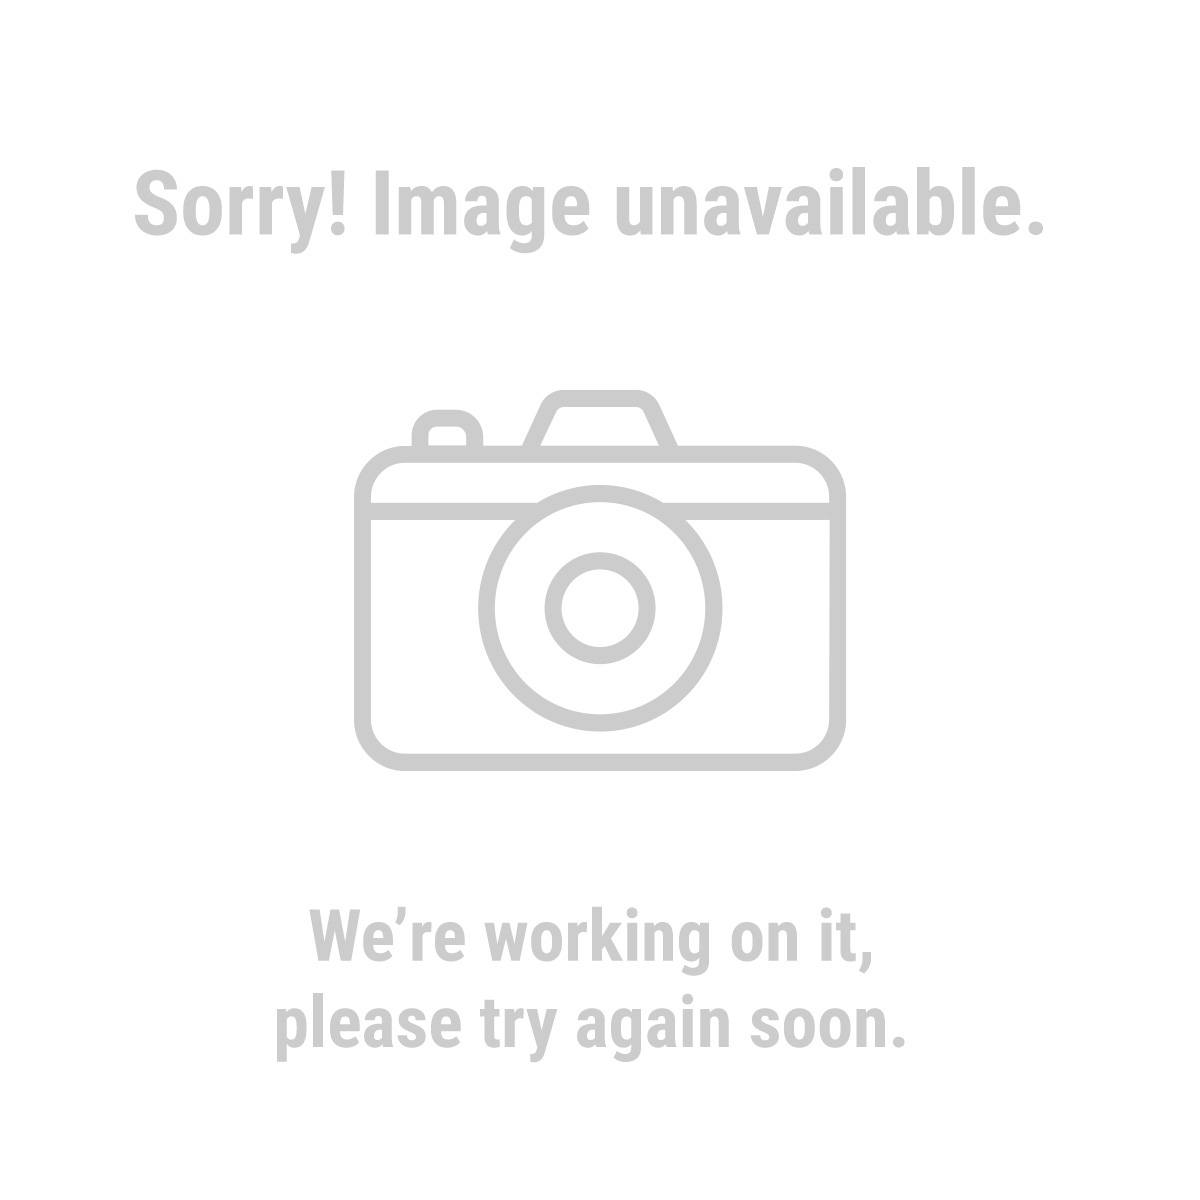 Western Safety Gloves 68308 Mechanics Gloves, Large